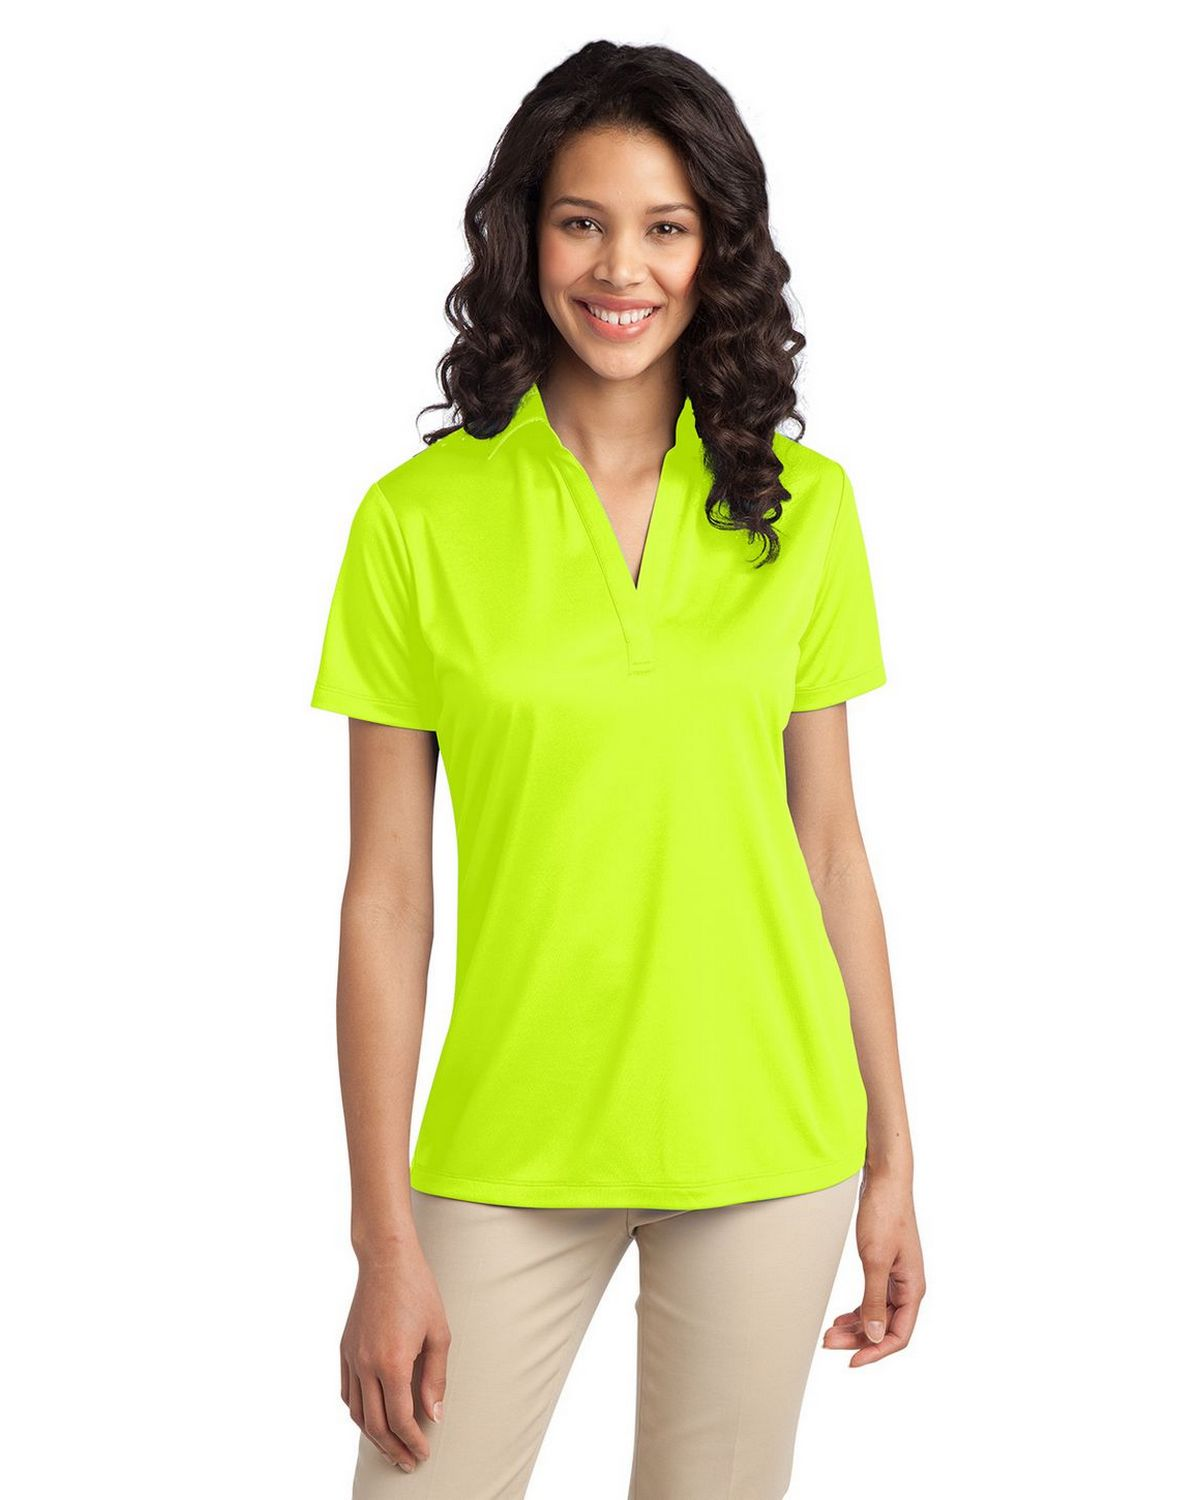 Port Authority L540 Women's Silk Touch Performance Polo - Neon Yellow - XS #silk